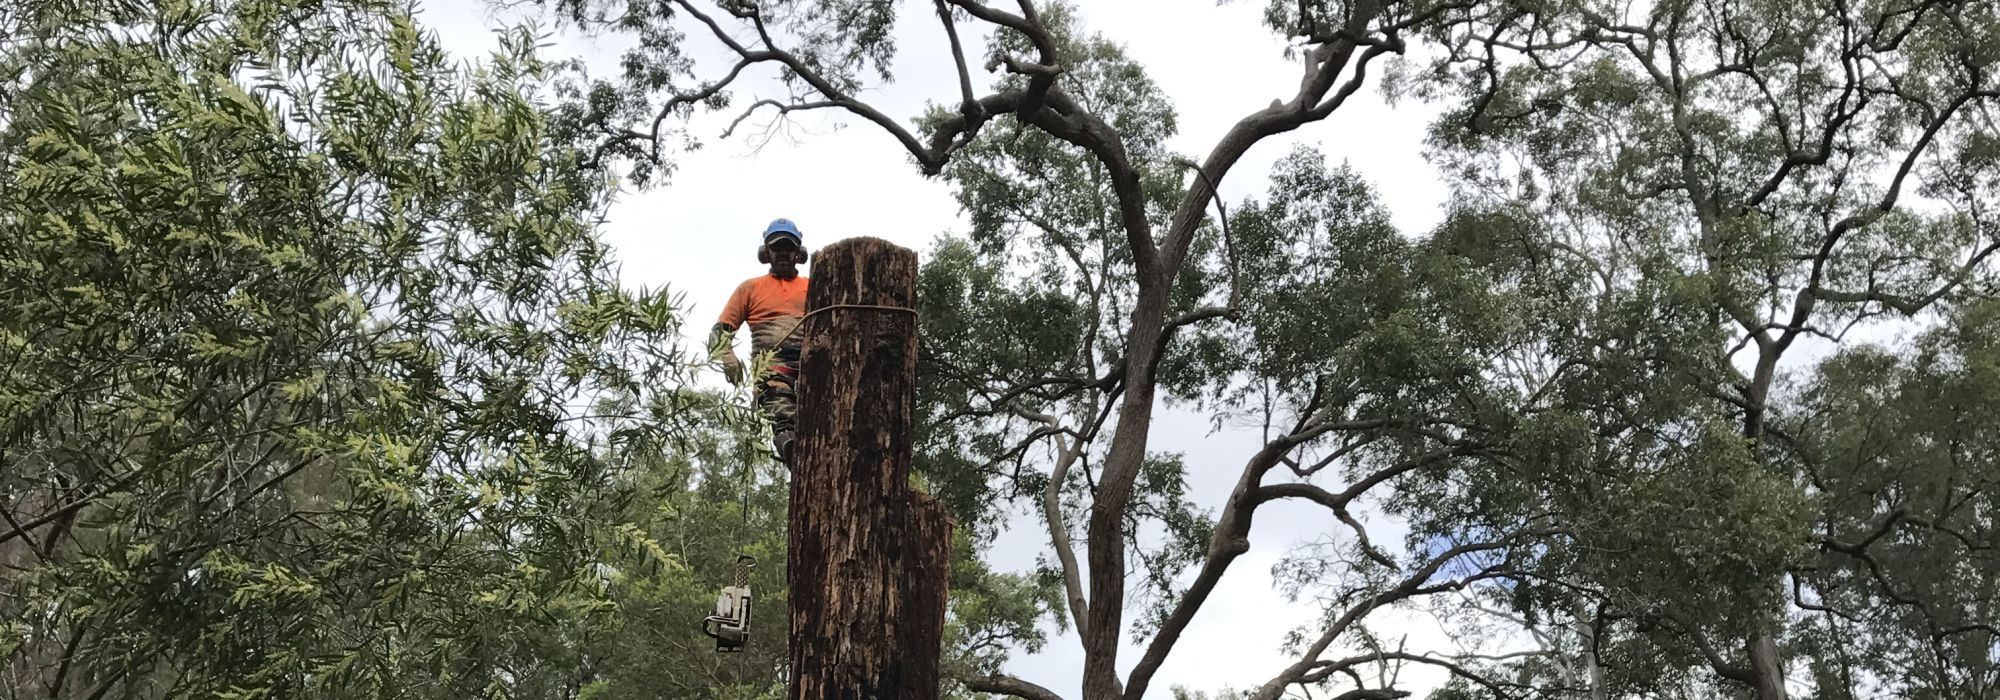 tree-removal-on-property